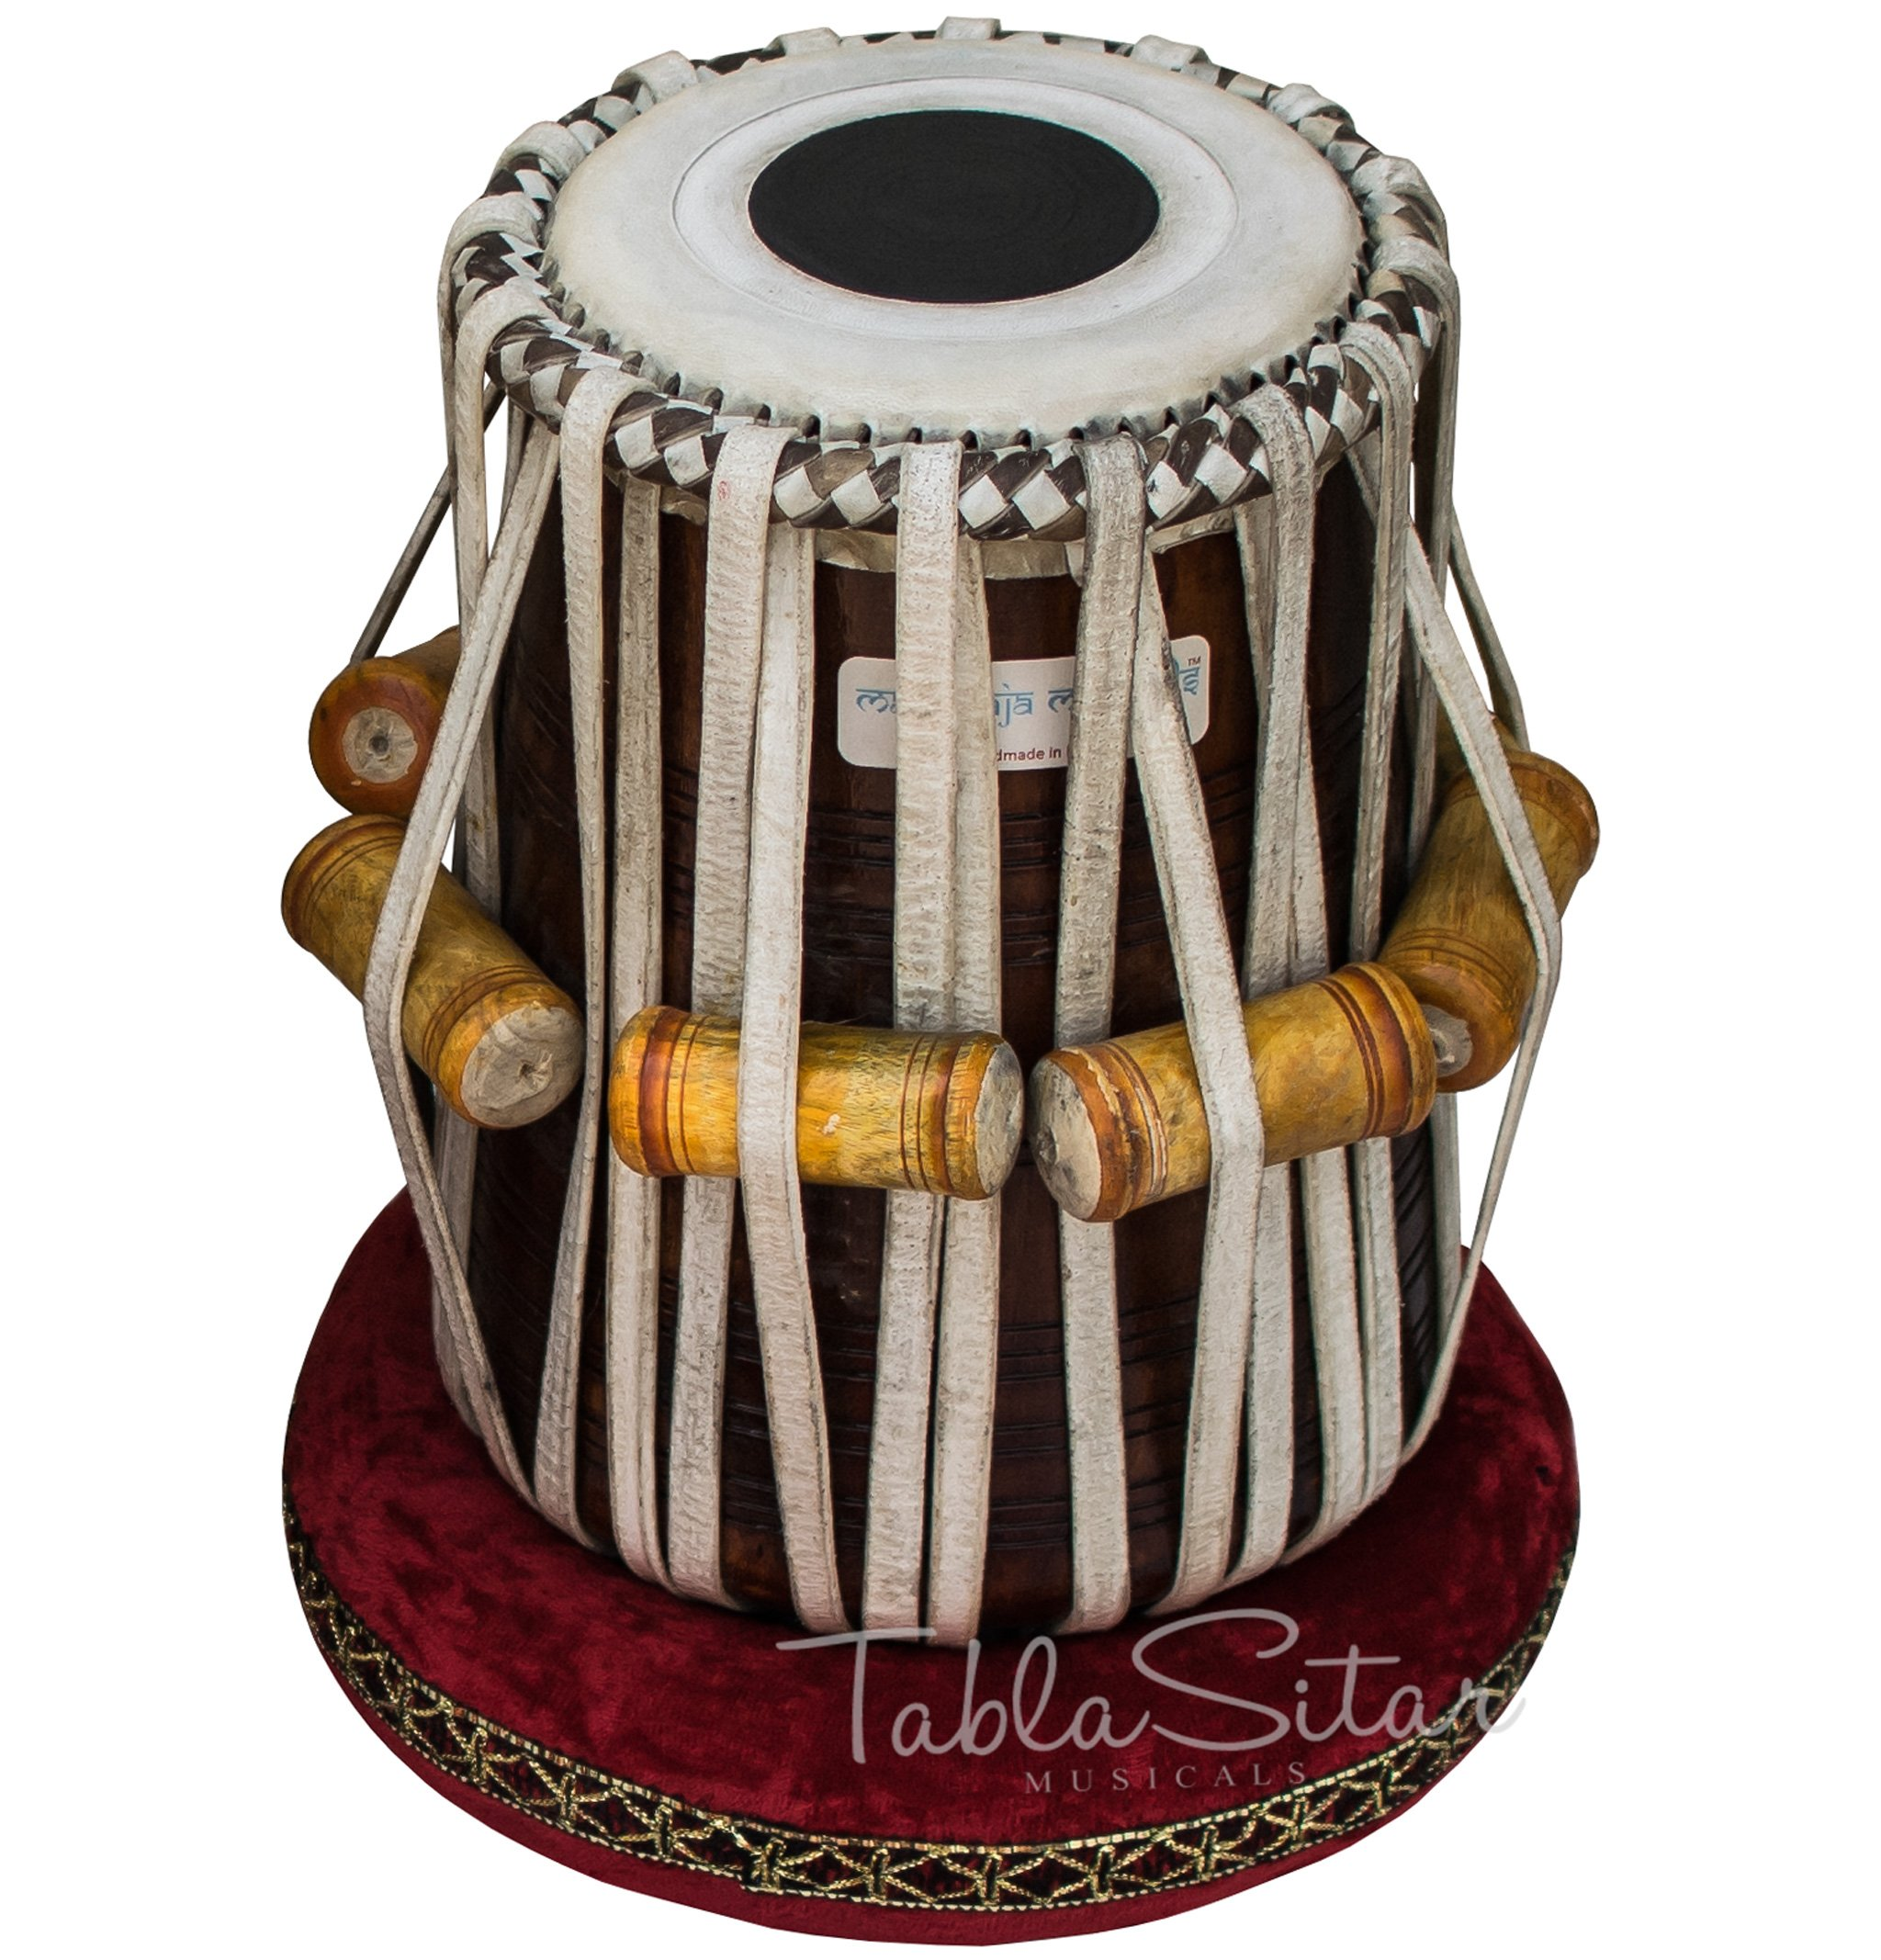 Maharaja Musicals Dayan Tabla, Sheesham Wood, Concert Quality, Tuneable To C Sharp (PDI-ACD) by Maharaja Musicals